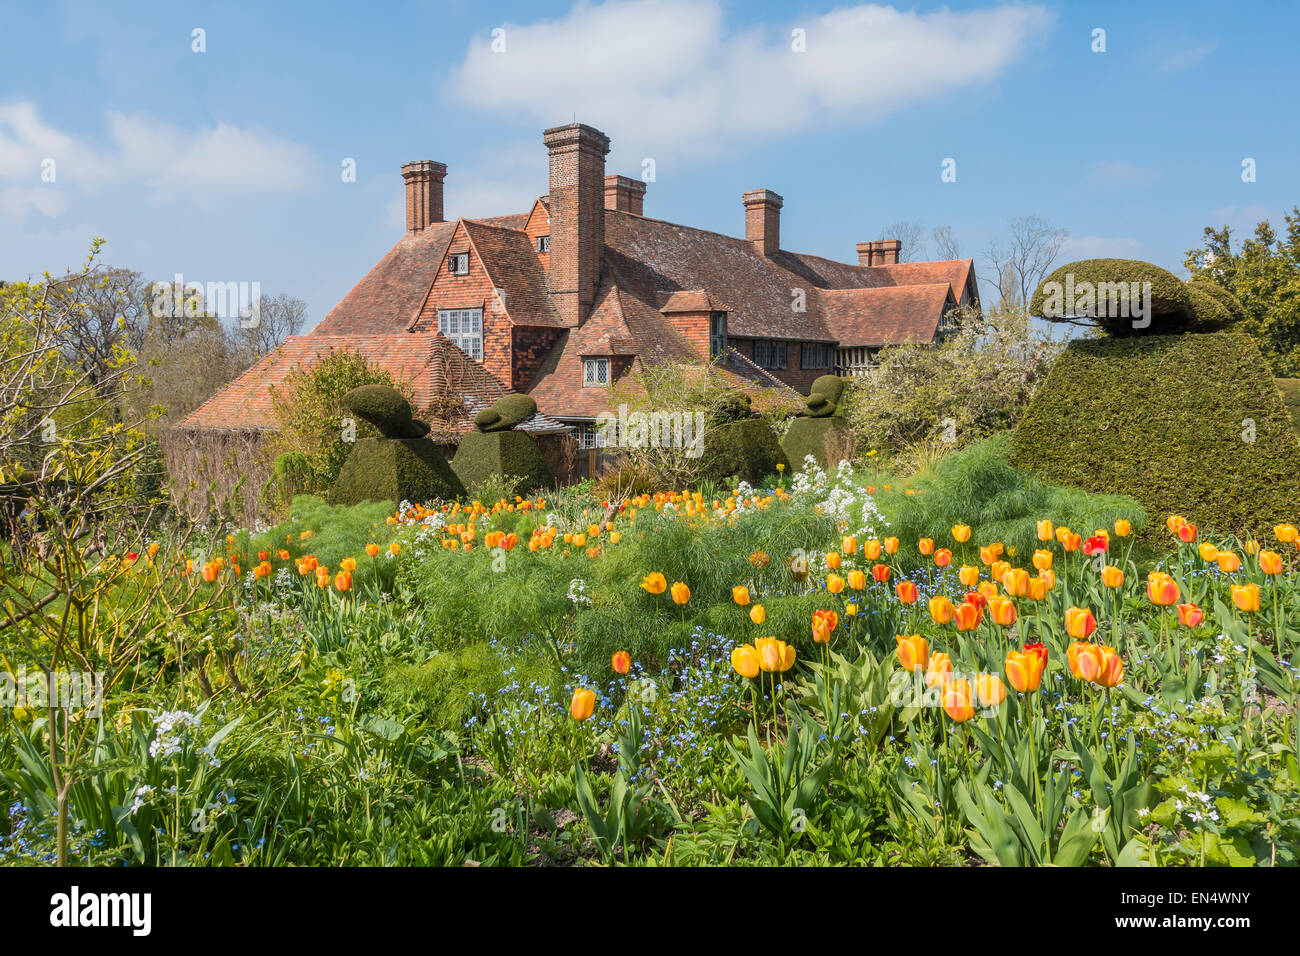 Ravishing Great Dixter House And Garden Northiam Tulips Springtime Uk Stock  With Lovable Great Dixter House And Garden Northiam Tulips Springtime Uk With Enchanting Unique Garden Buildings Also Gardening Suppliers In Addition English Garden Pdf And Mot Welwyn Garden City As Well As Hanging Gardens Of Heligan Additionally New Build Garden Design From Alamycom With   Lovable Great Dixter House And Garden Northiam Tulips Springtime Uk Stock  With Enchanting Great Dixter House And Garden Northiam Tulips Springtime Uk And Ravishing Unique Garden Buildings Also Gardening Suppliers In Addition English Garden Pdf From Alamycom